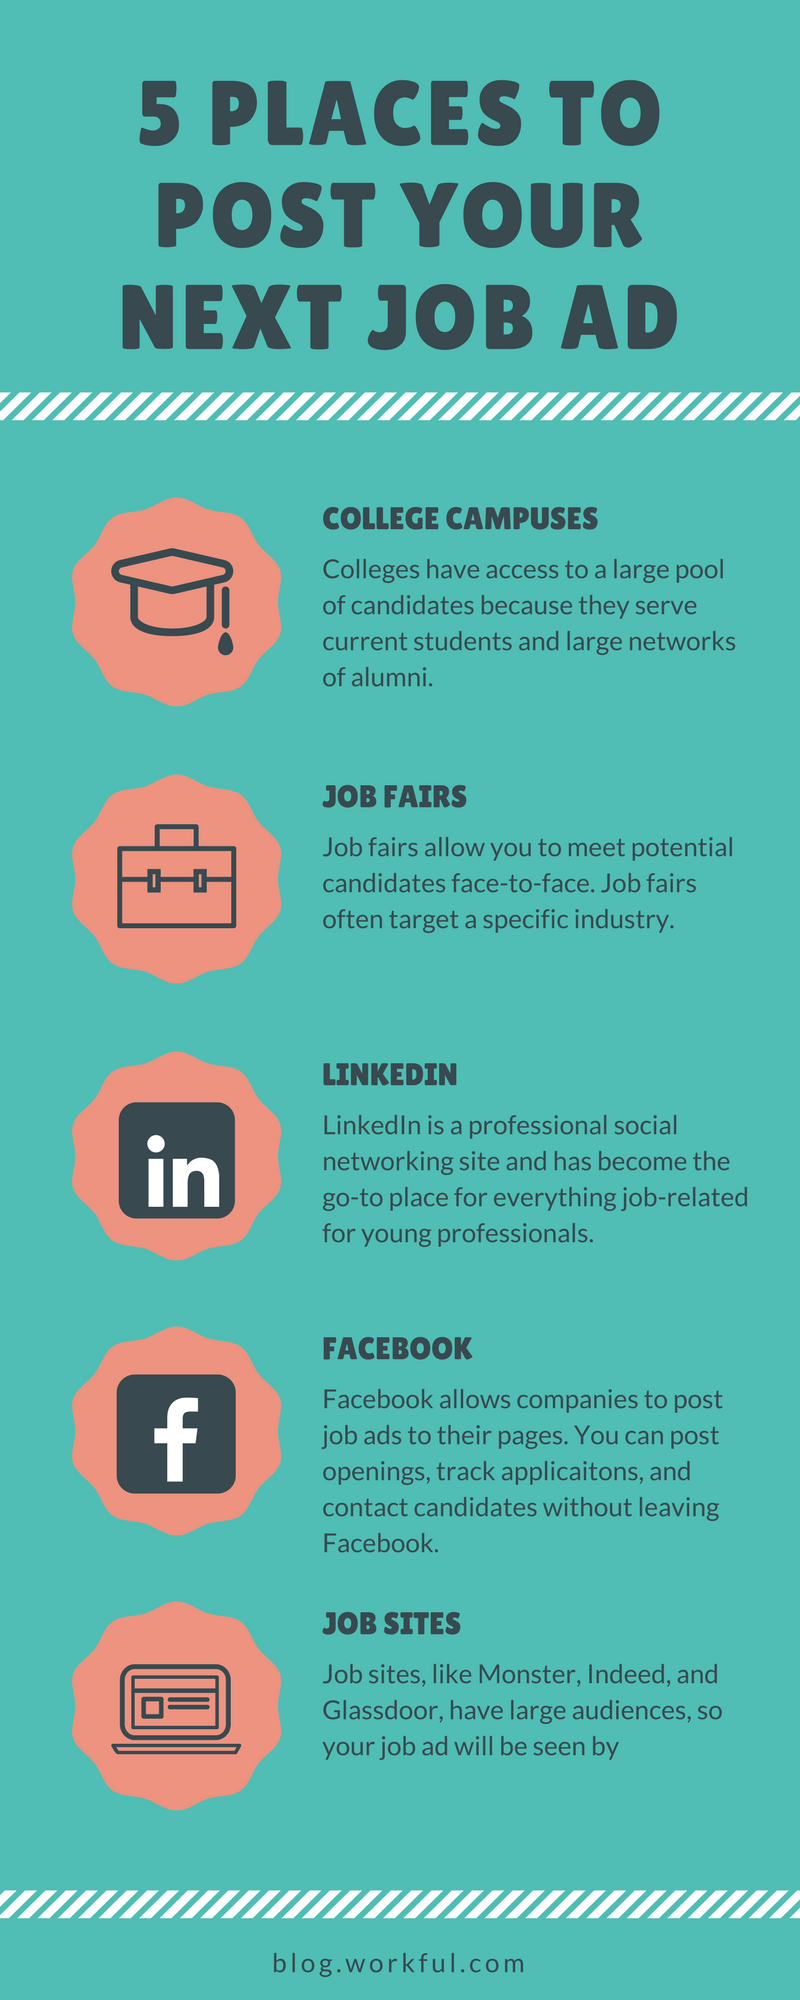 5 Places to Post Your Next Job Ad